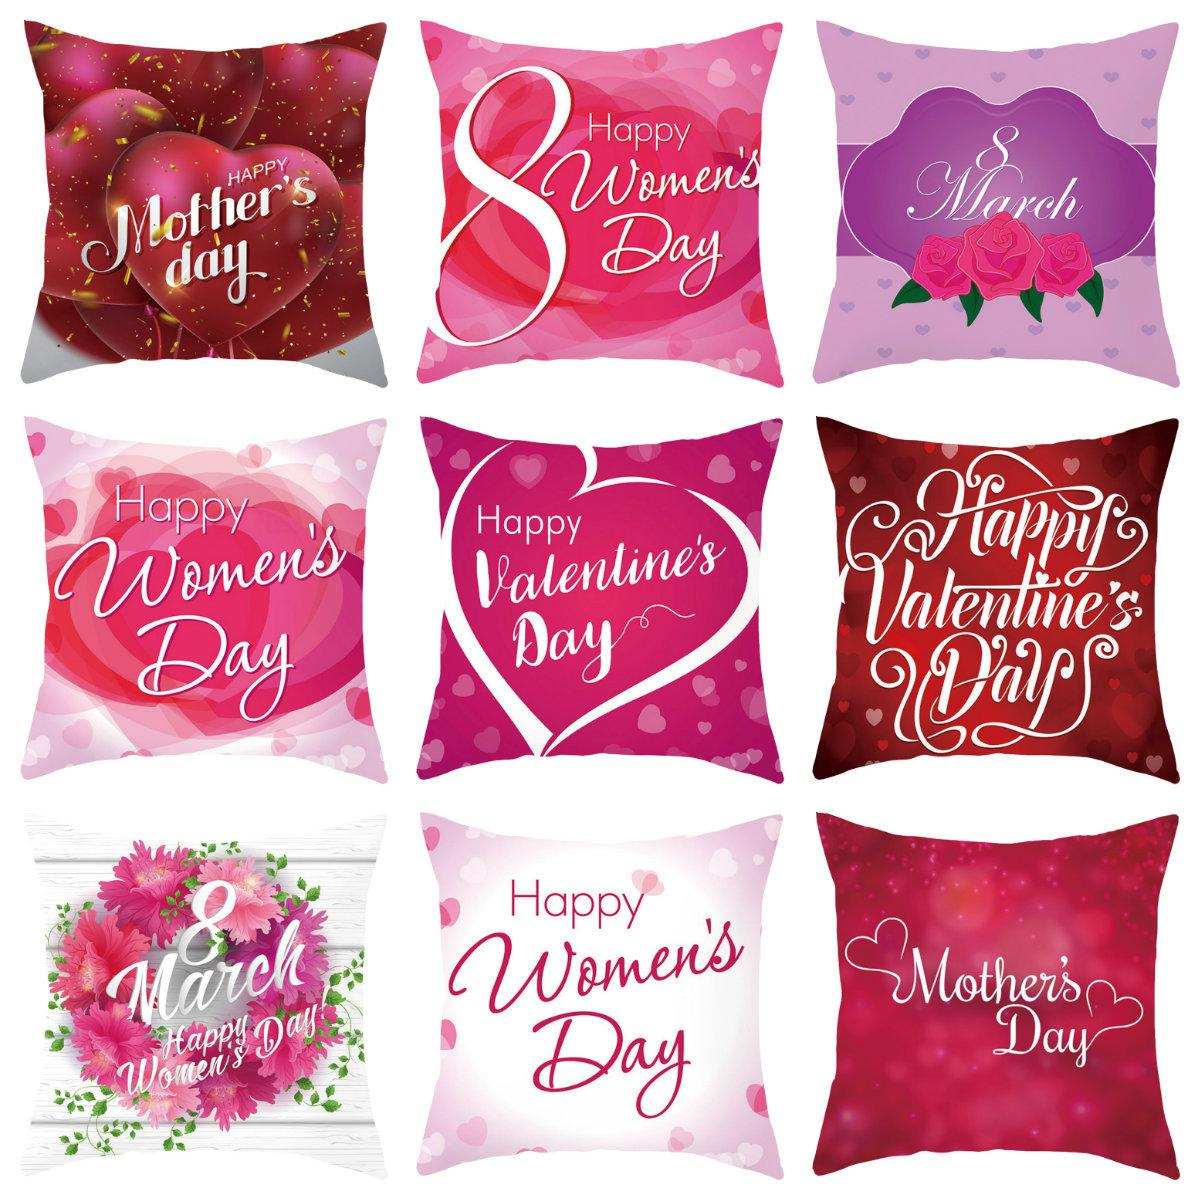 Happy Mother's Day Pillows Case Letter Print Pillow Cover 45*45CM Sofa Nap Cushion Covers Warm Home Decoration TTA490